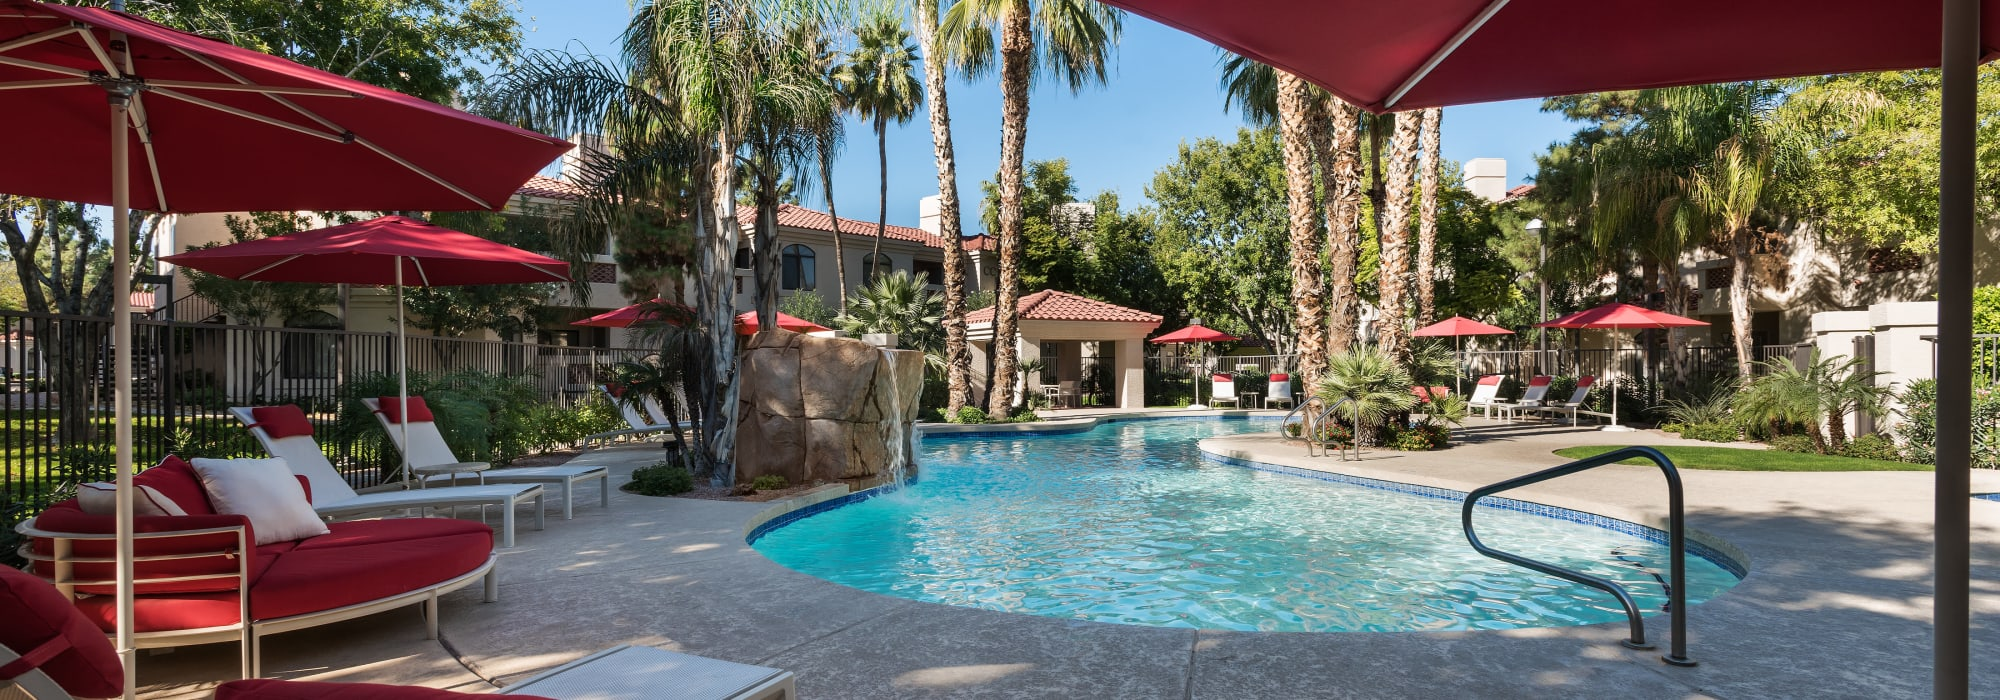 Secondary swimming pool area with plenty of shaded seating nearby at San Palmilla in Tempe, Arizona